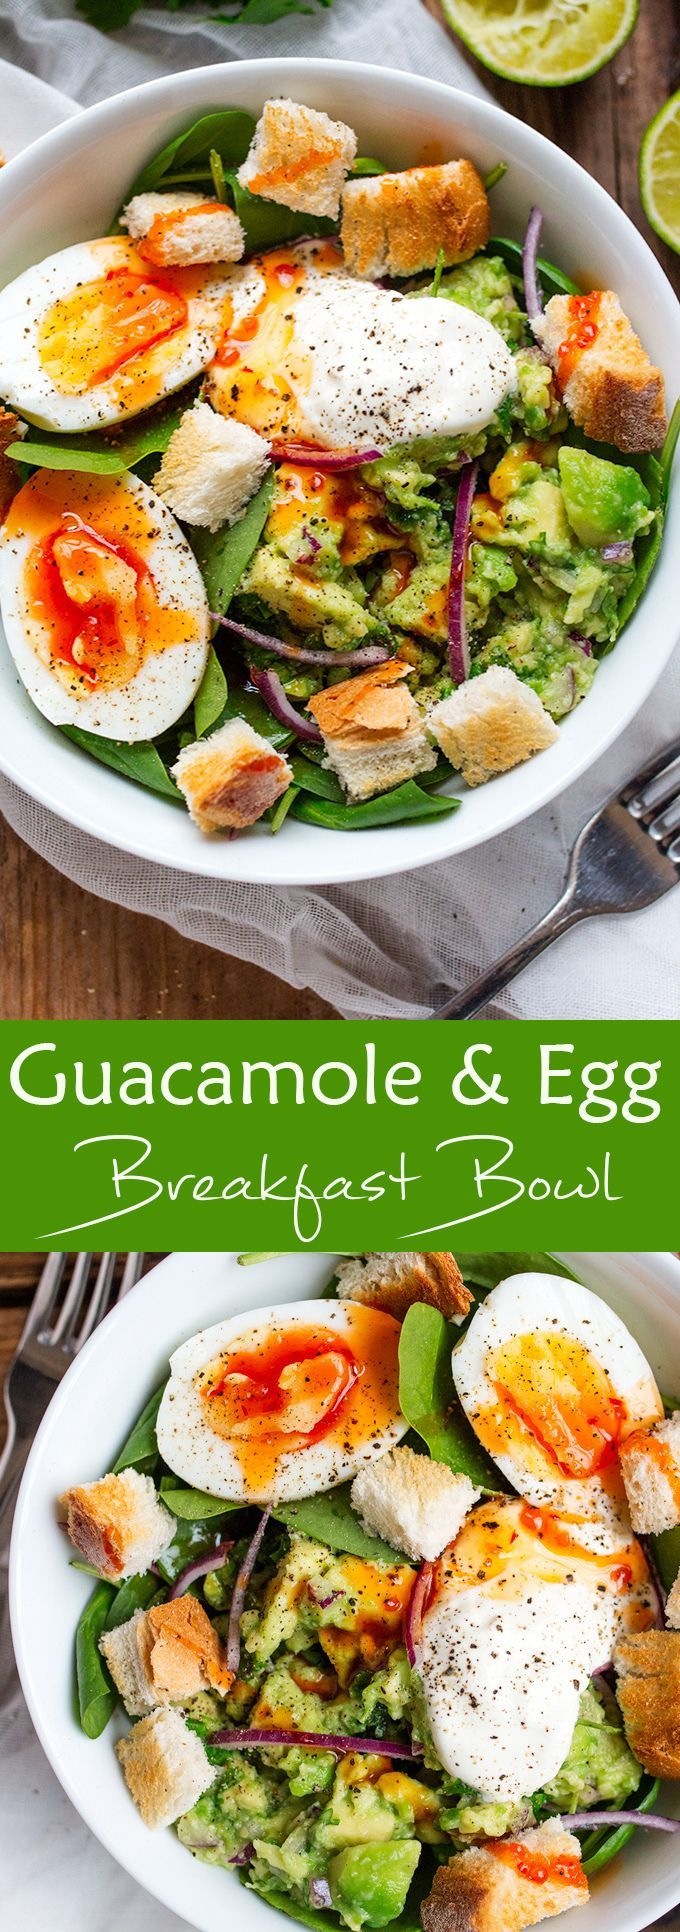 Guacamole and Egg Breakfast Bowl - a delicious, healthy and filling breakfast - ready in 10 mins too! - I Quit Sugar